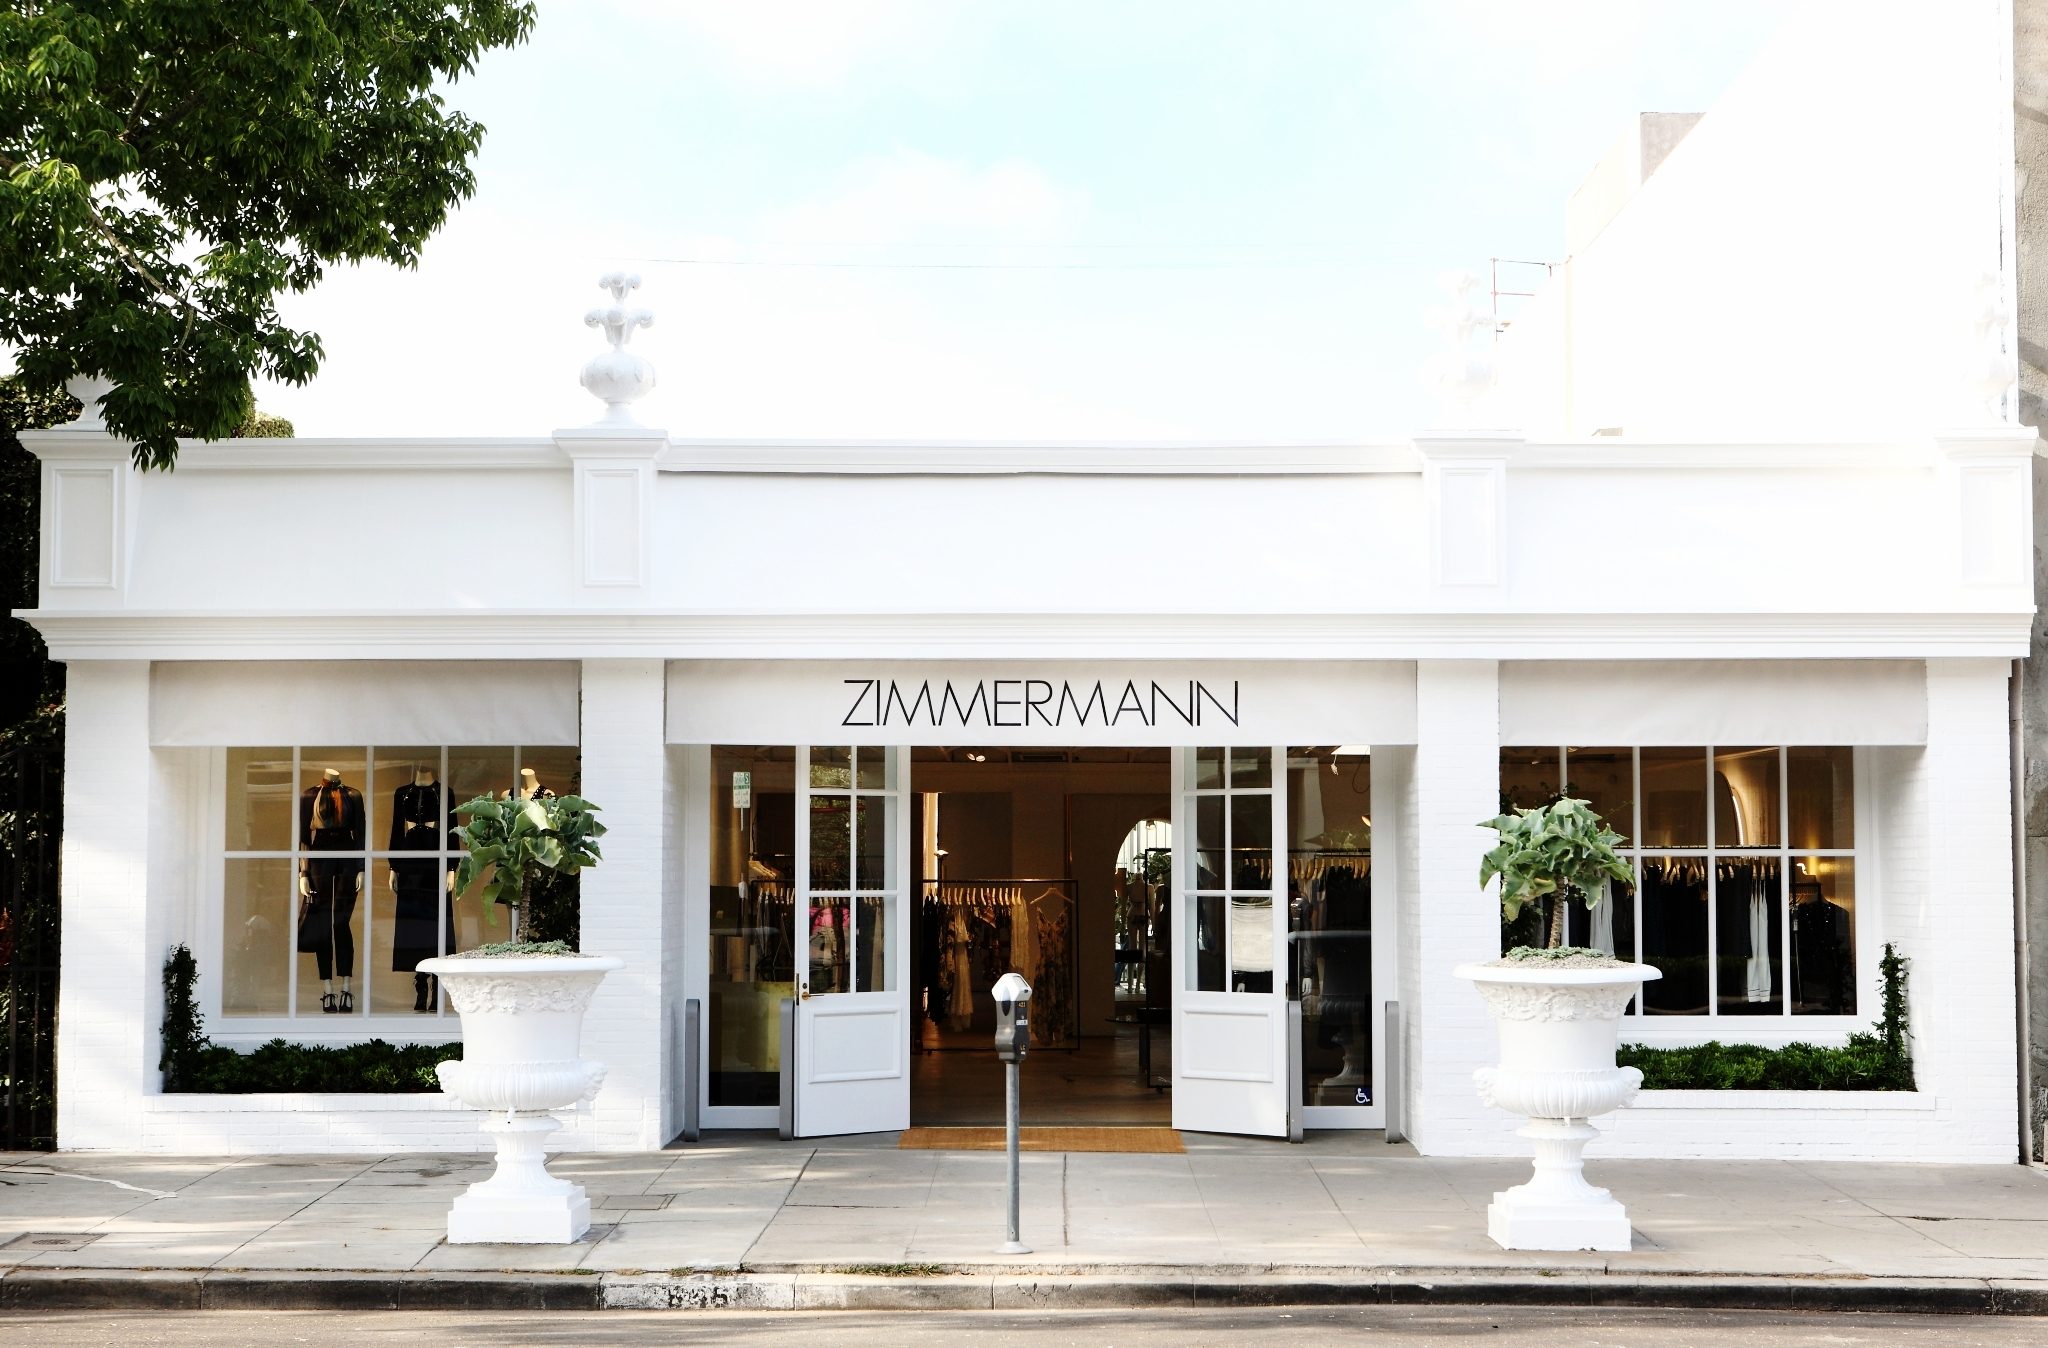 Ahhhh  Zimmermann ! I have never met a single person who loves fashion that doesn't appreciate the whimsical and detail oriented design of everything Zimmermann. I truly would wear their dresses and swim suits everyday if I could. Also located on Melrose place!